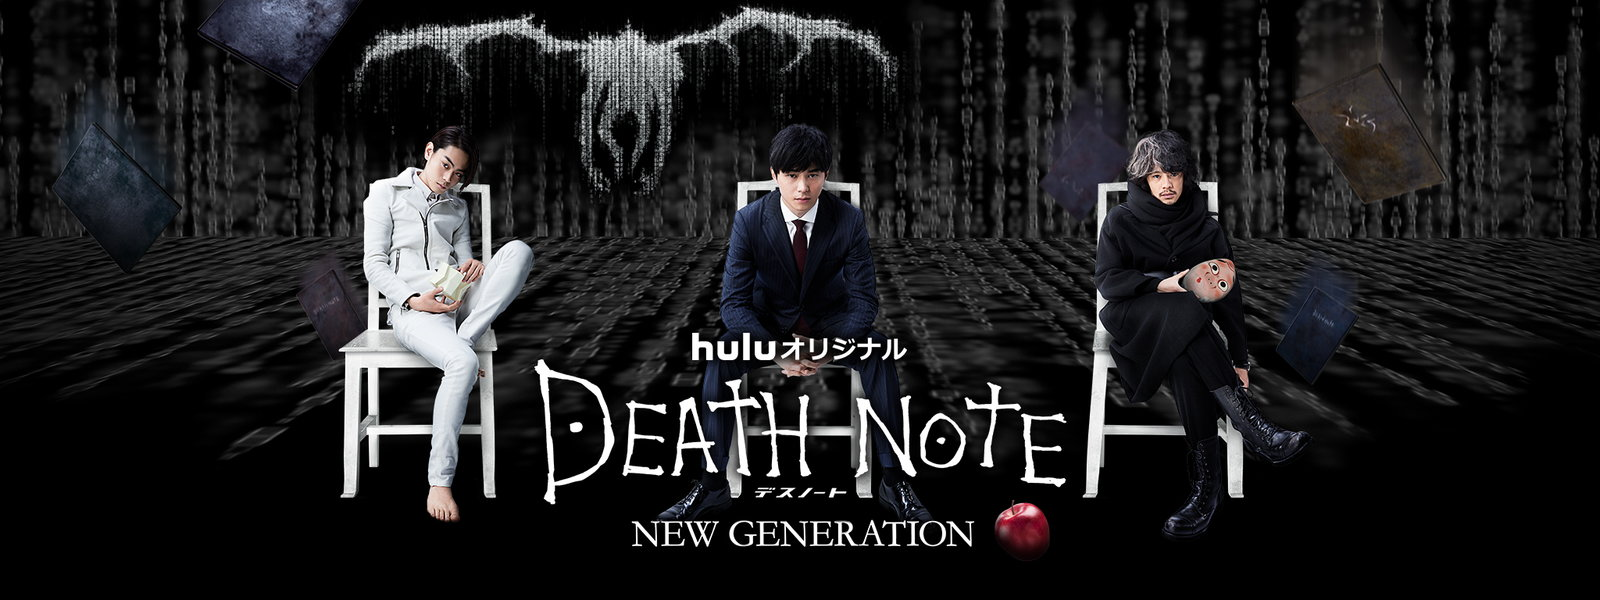 DEATH NOTE デスノート NEW GENERATIONの動画 - デスノート Light up the NEW world